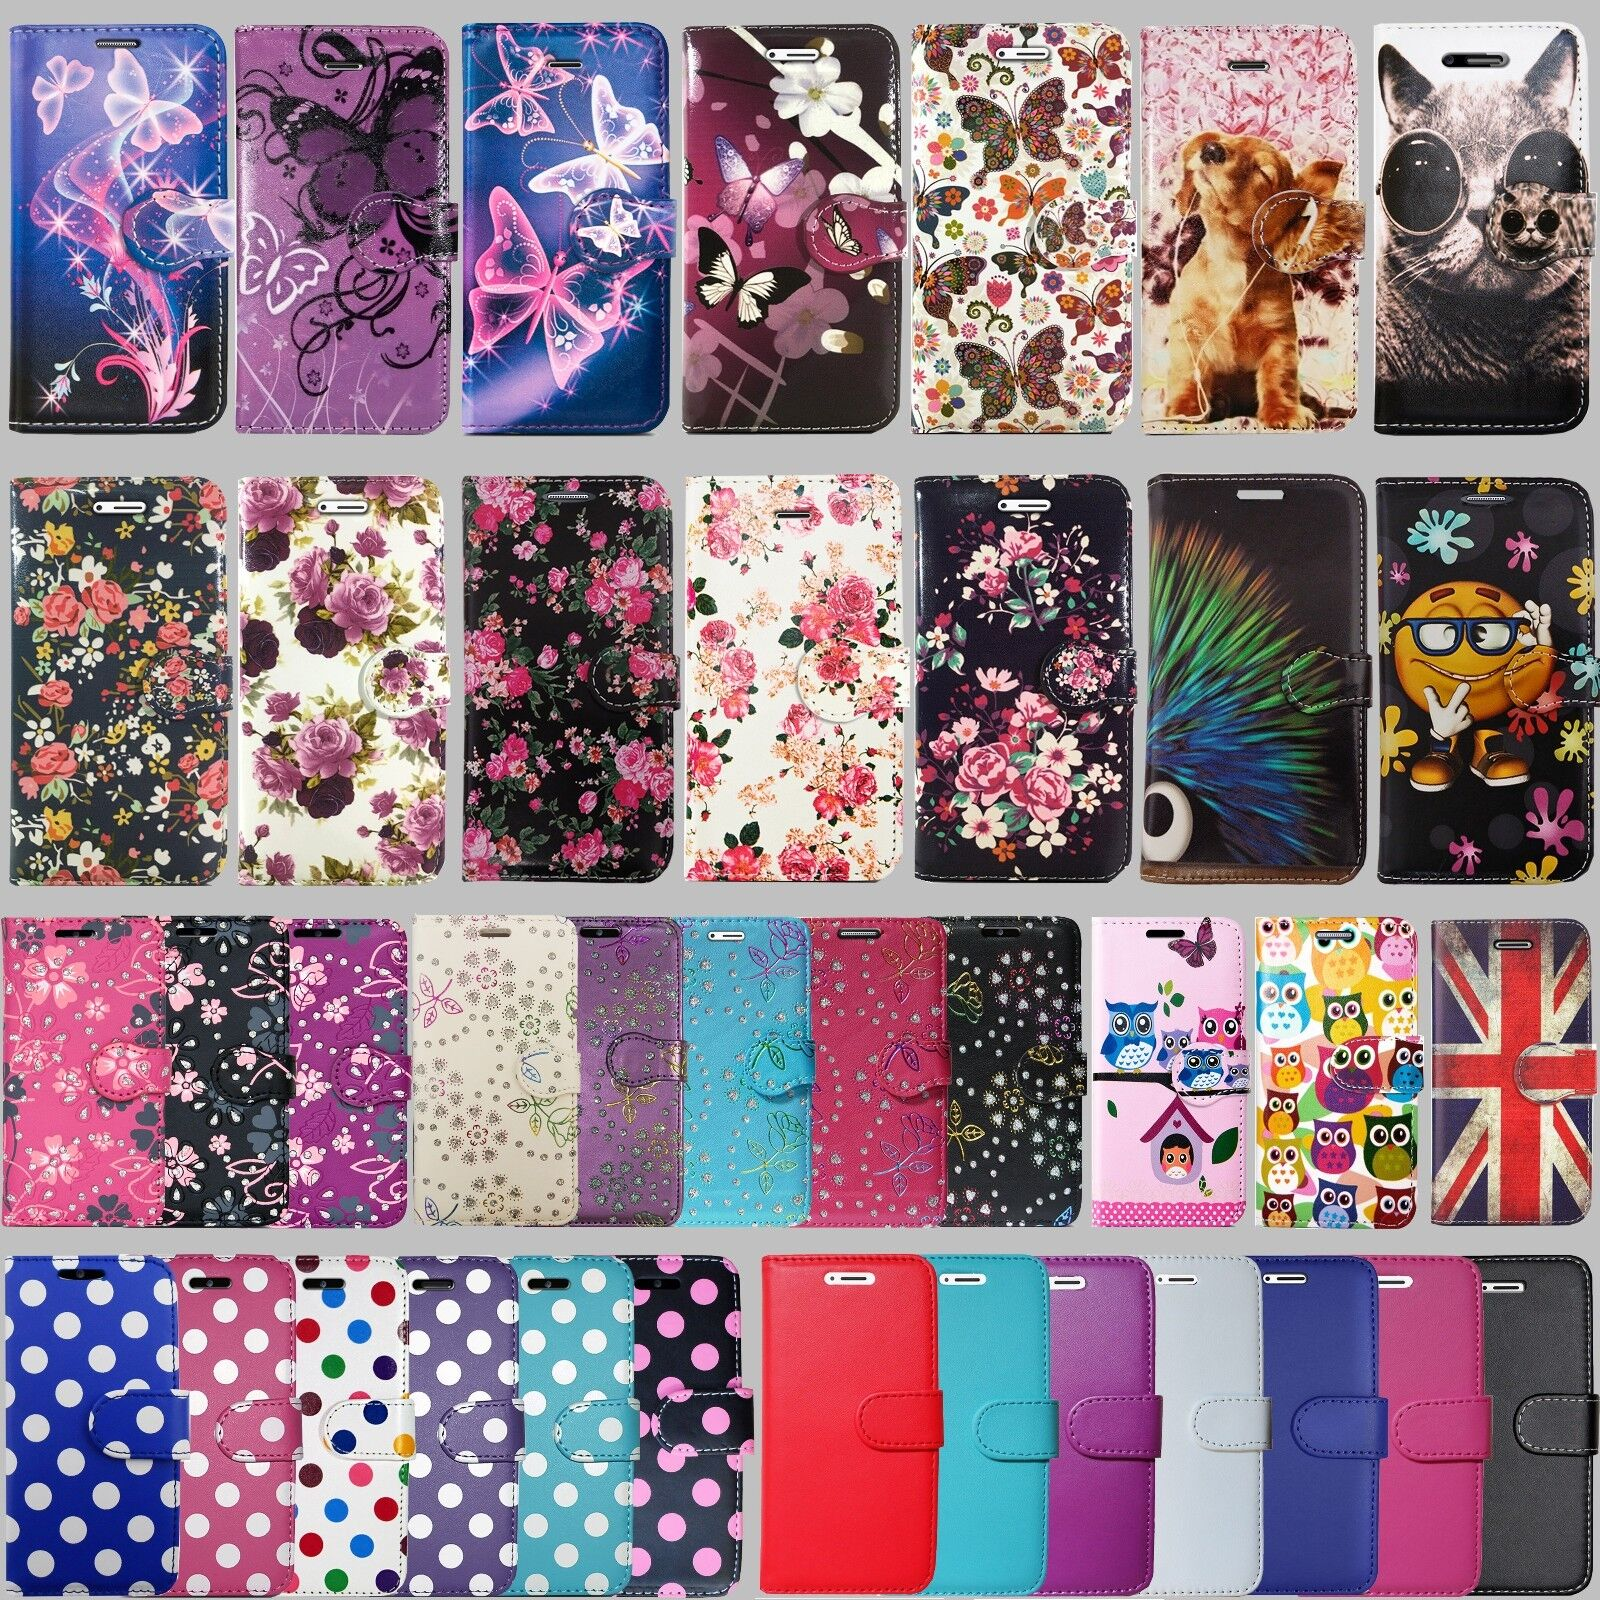 NEW Flip Wallet Leather Cover Case for Apple iPhone 5 5S SE 6 6S 7 & Plus Models